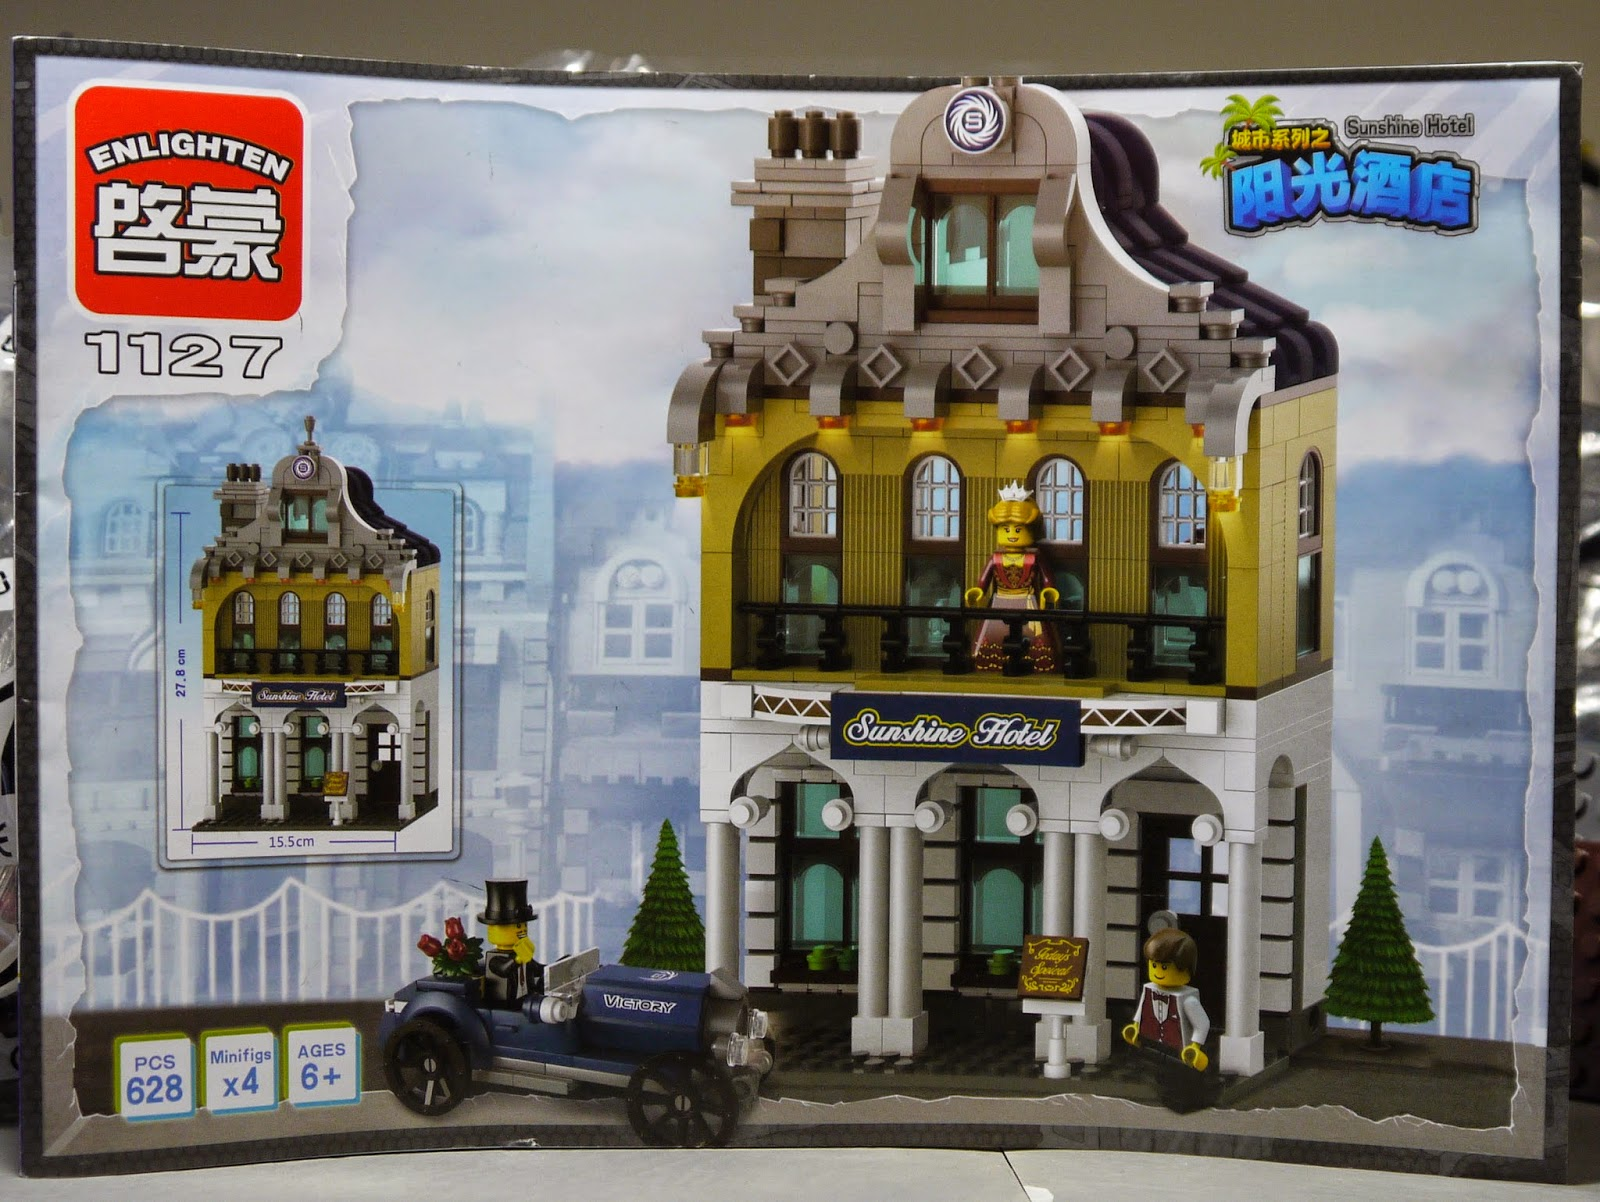 Enlightone: Bricks And Figures: Enlighten 1127 Sunshine Hotel Set Review